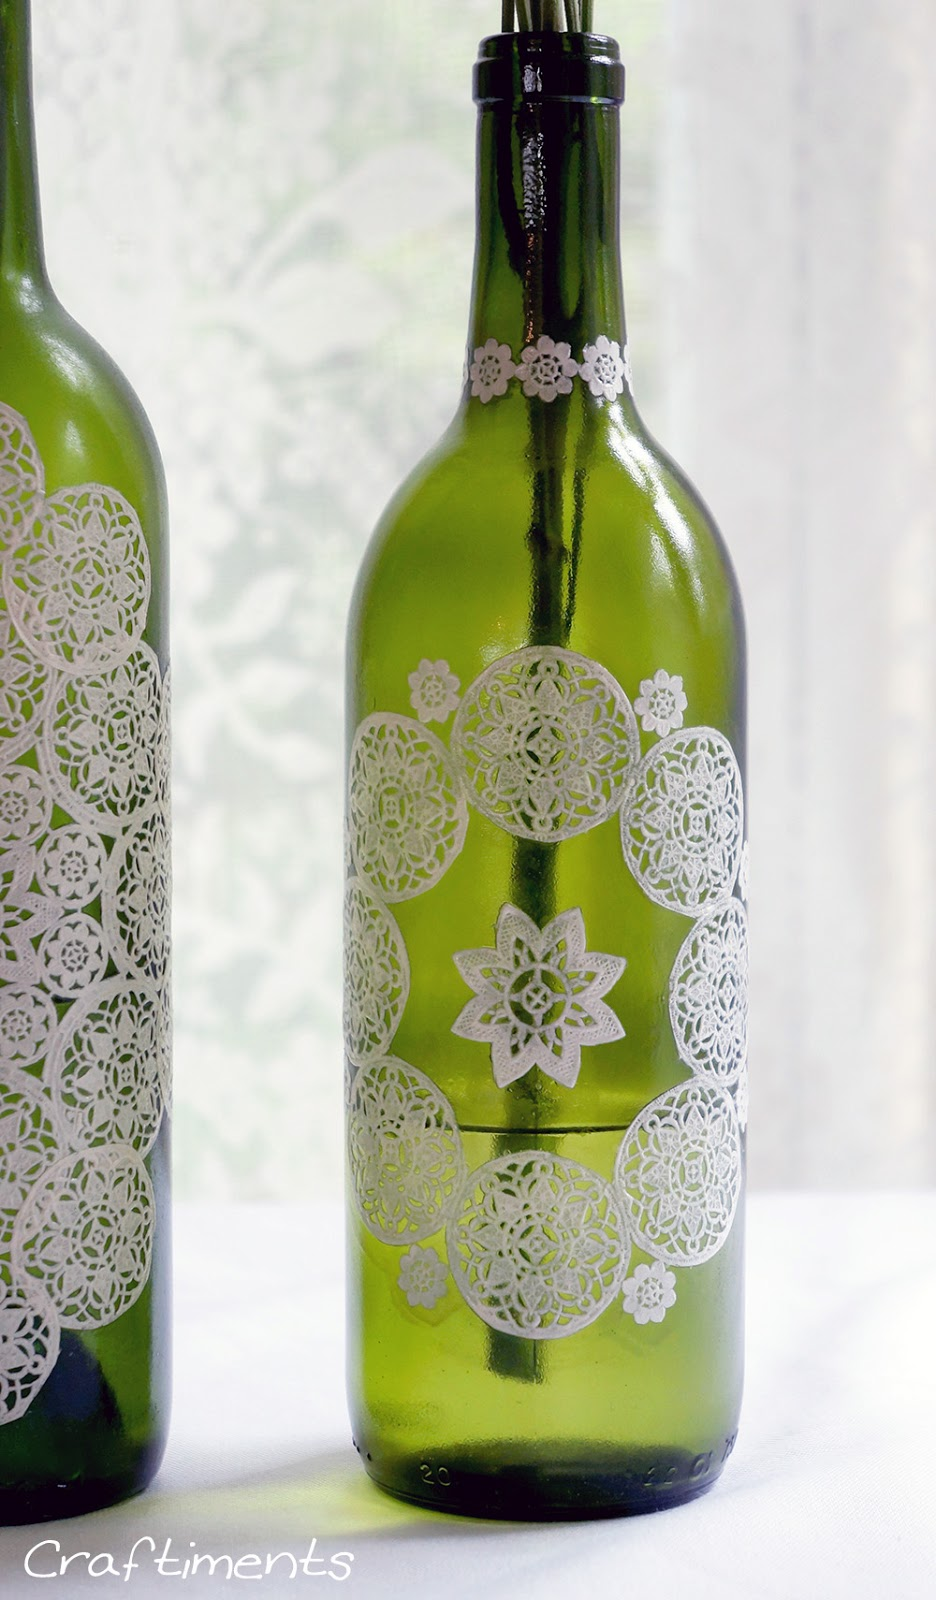 Craftiments:  Paper Doily Decoupaged Bottle Tutorial